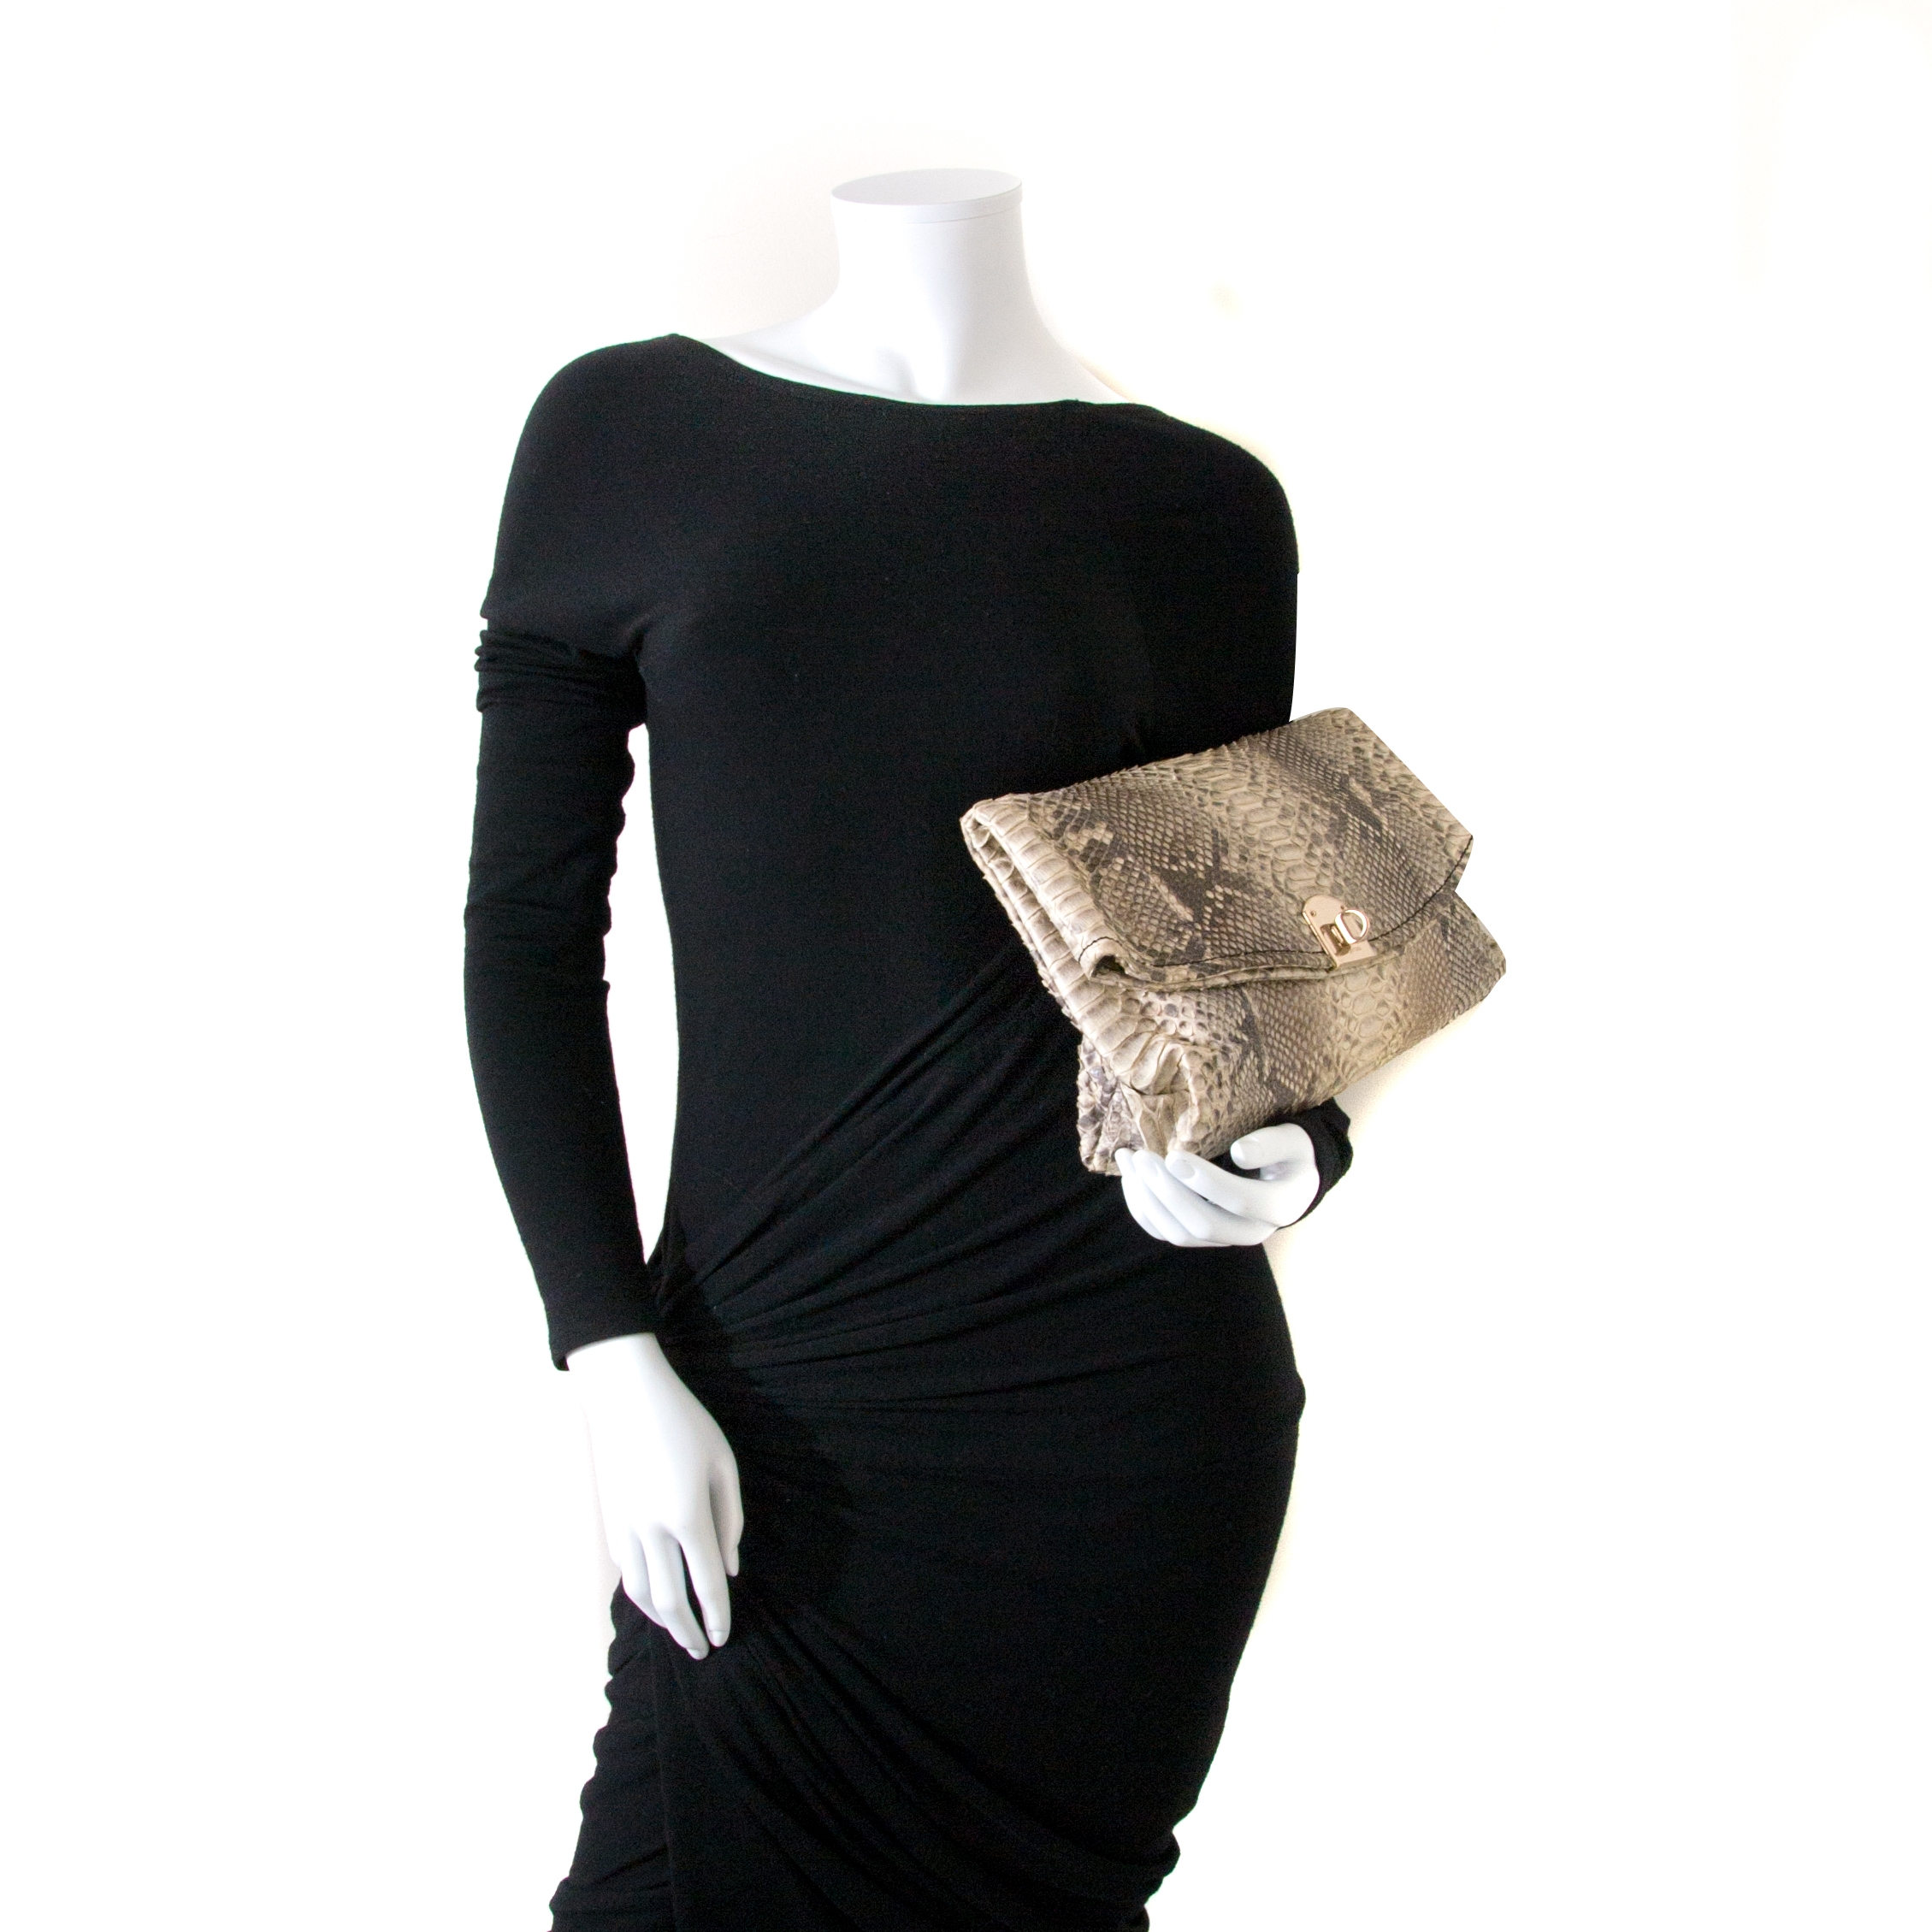 sergio rossi python leather clutch now for sale at labellov vintage fashion webshop belgium